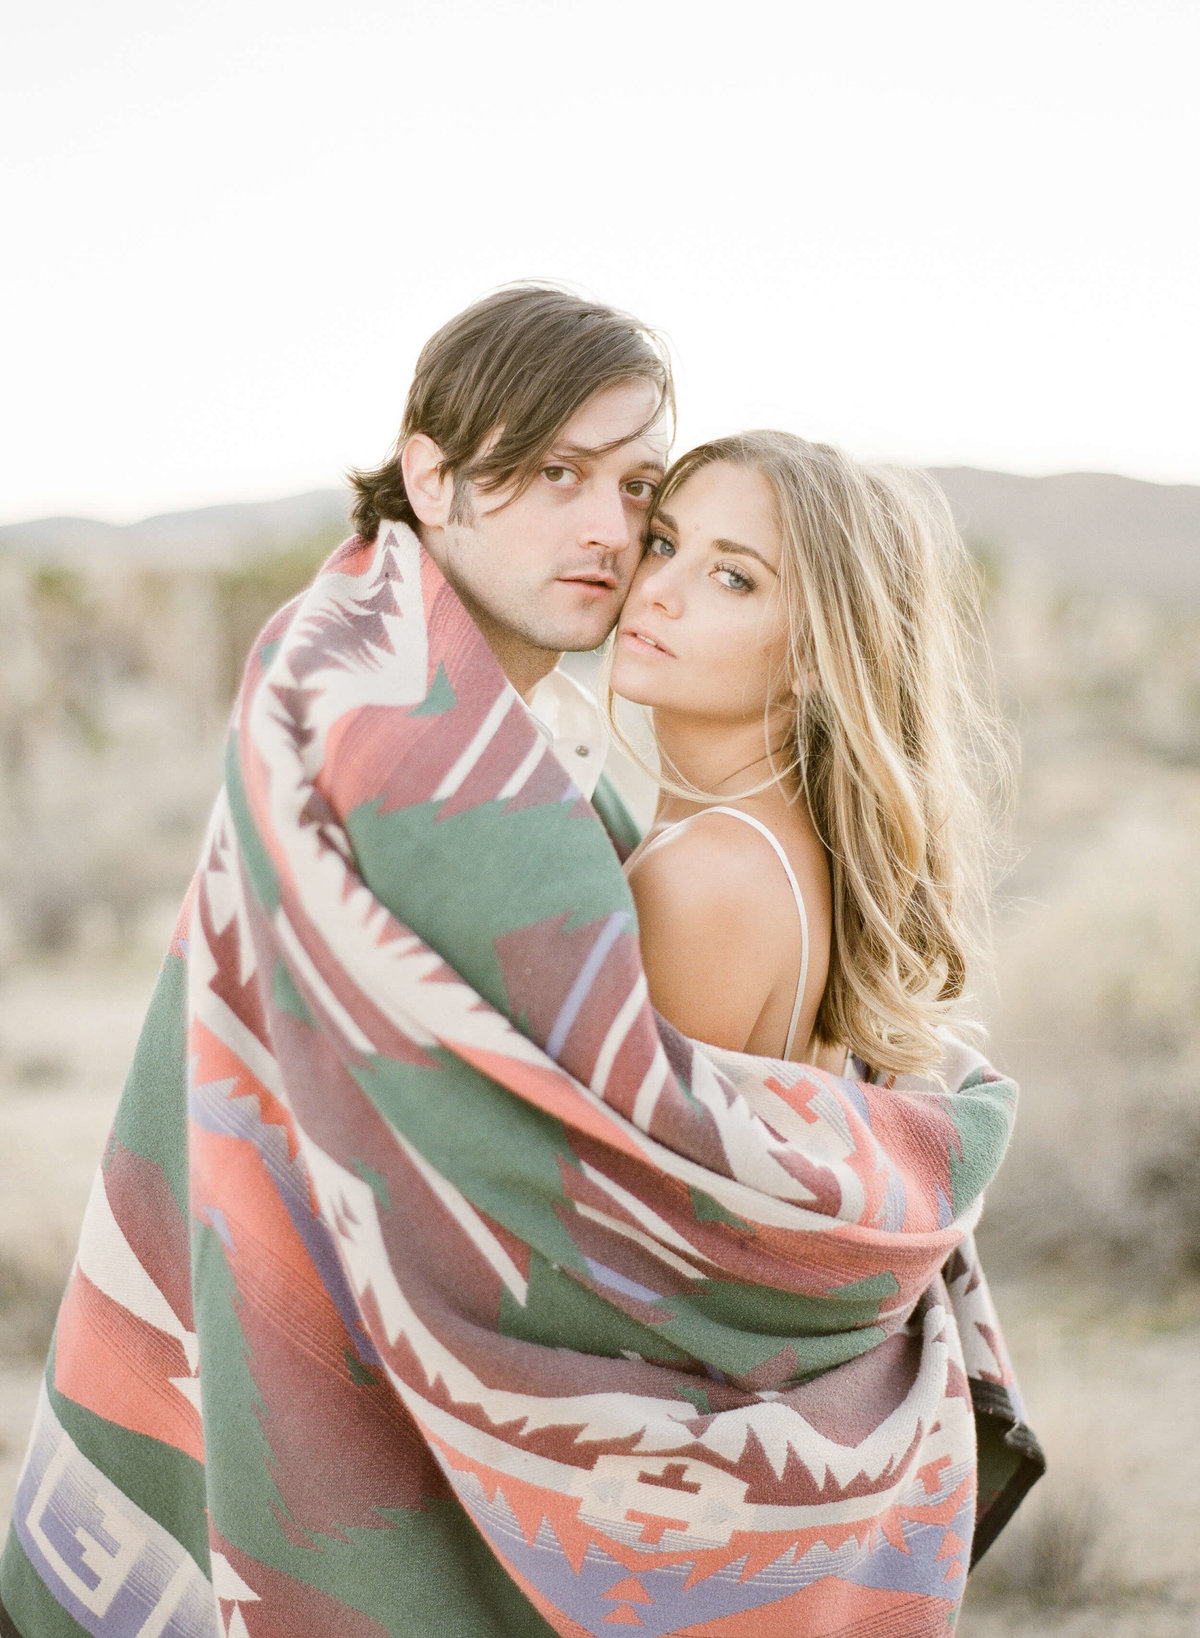 25-KTMerry-engagement-photography-najavo-blanket-Joshua-Tree